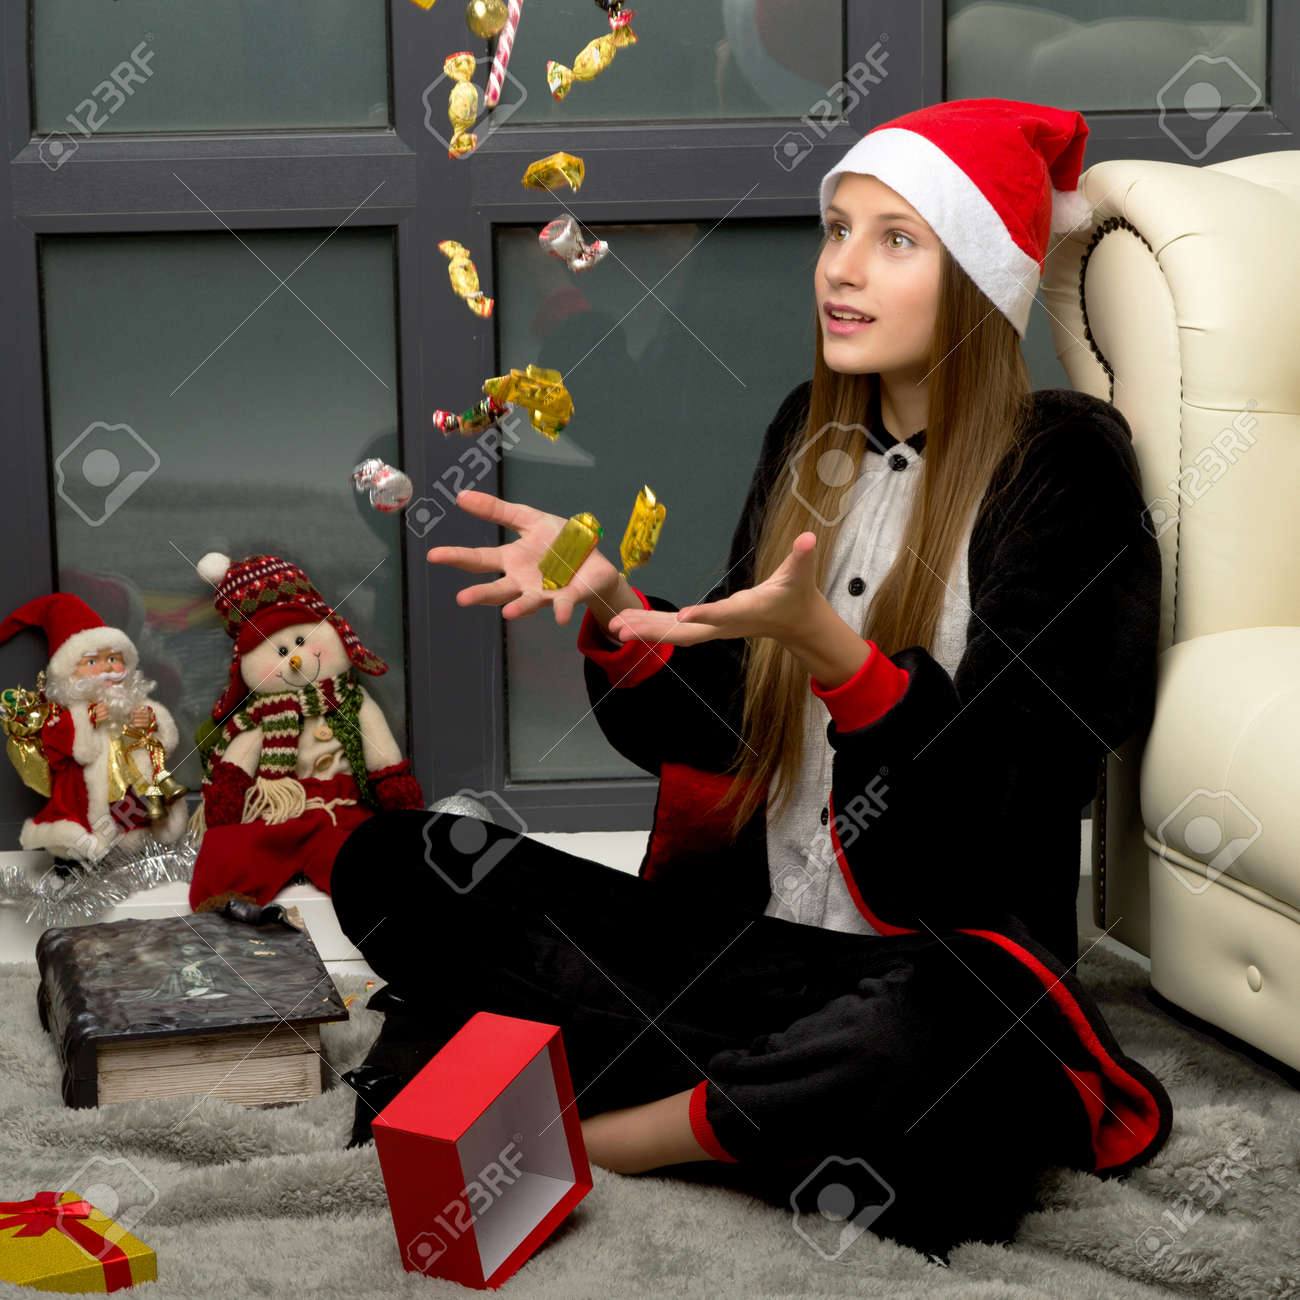 Happy girl in Santa hat throwing up candy sweets - 173438610